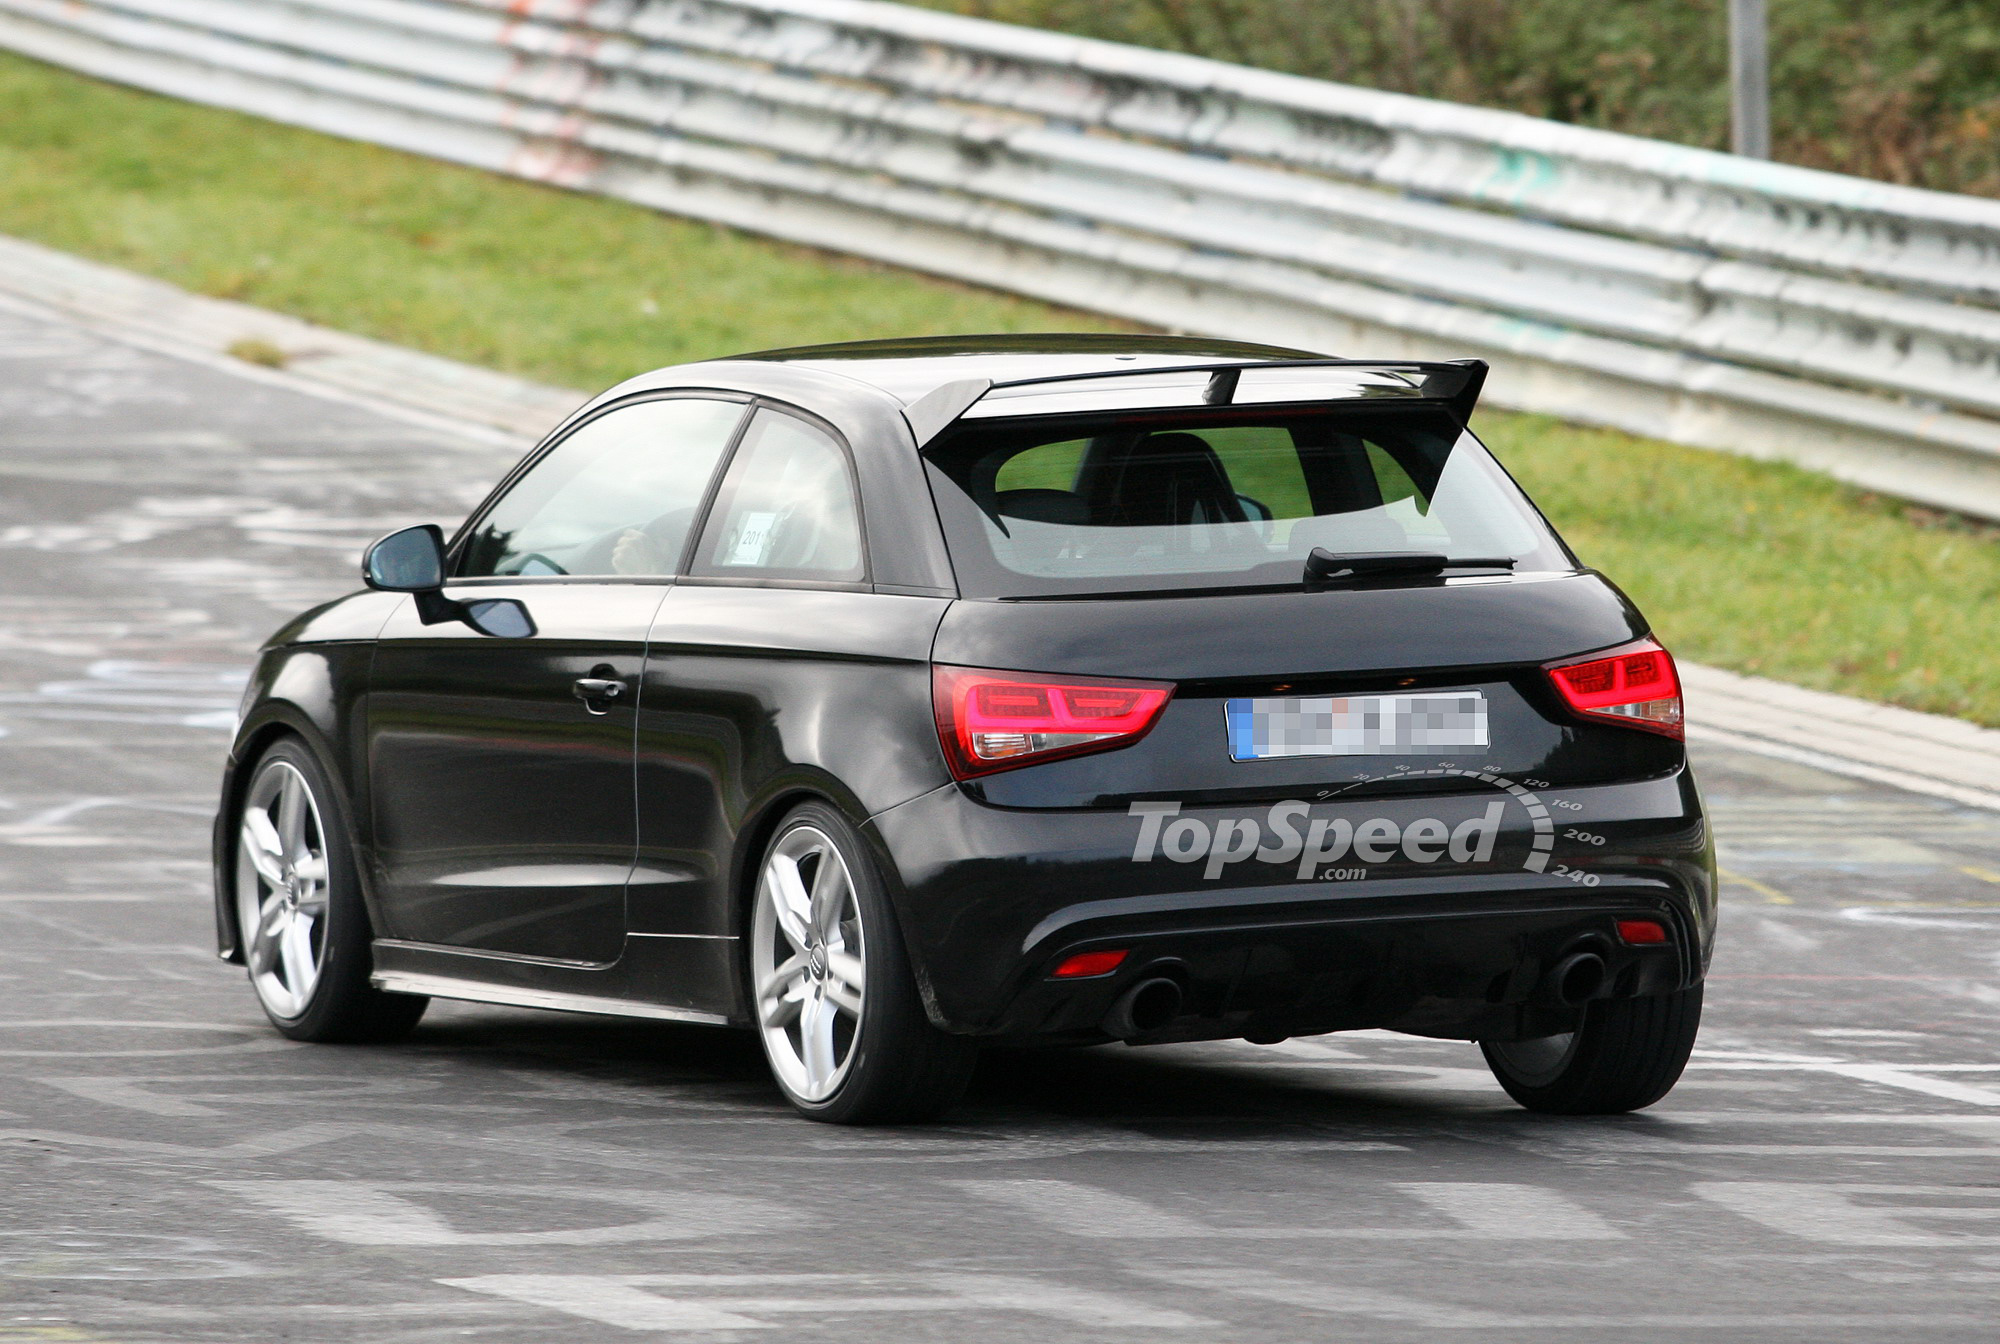 2012 Audi RS1 | Top Speed